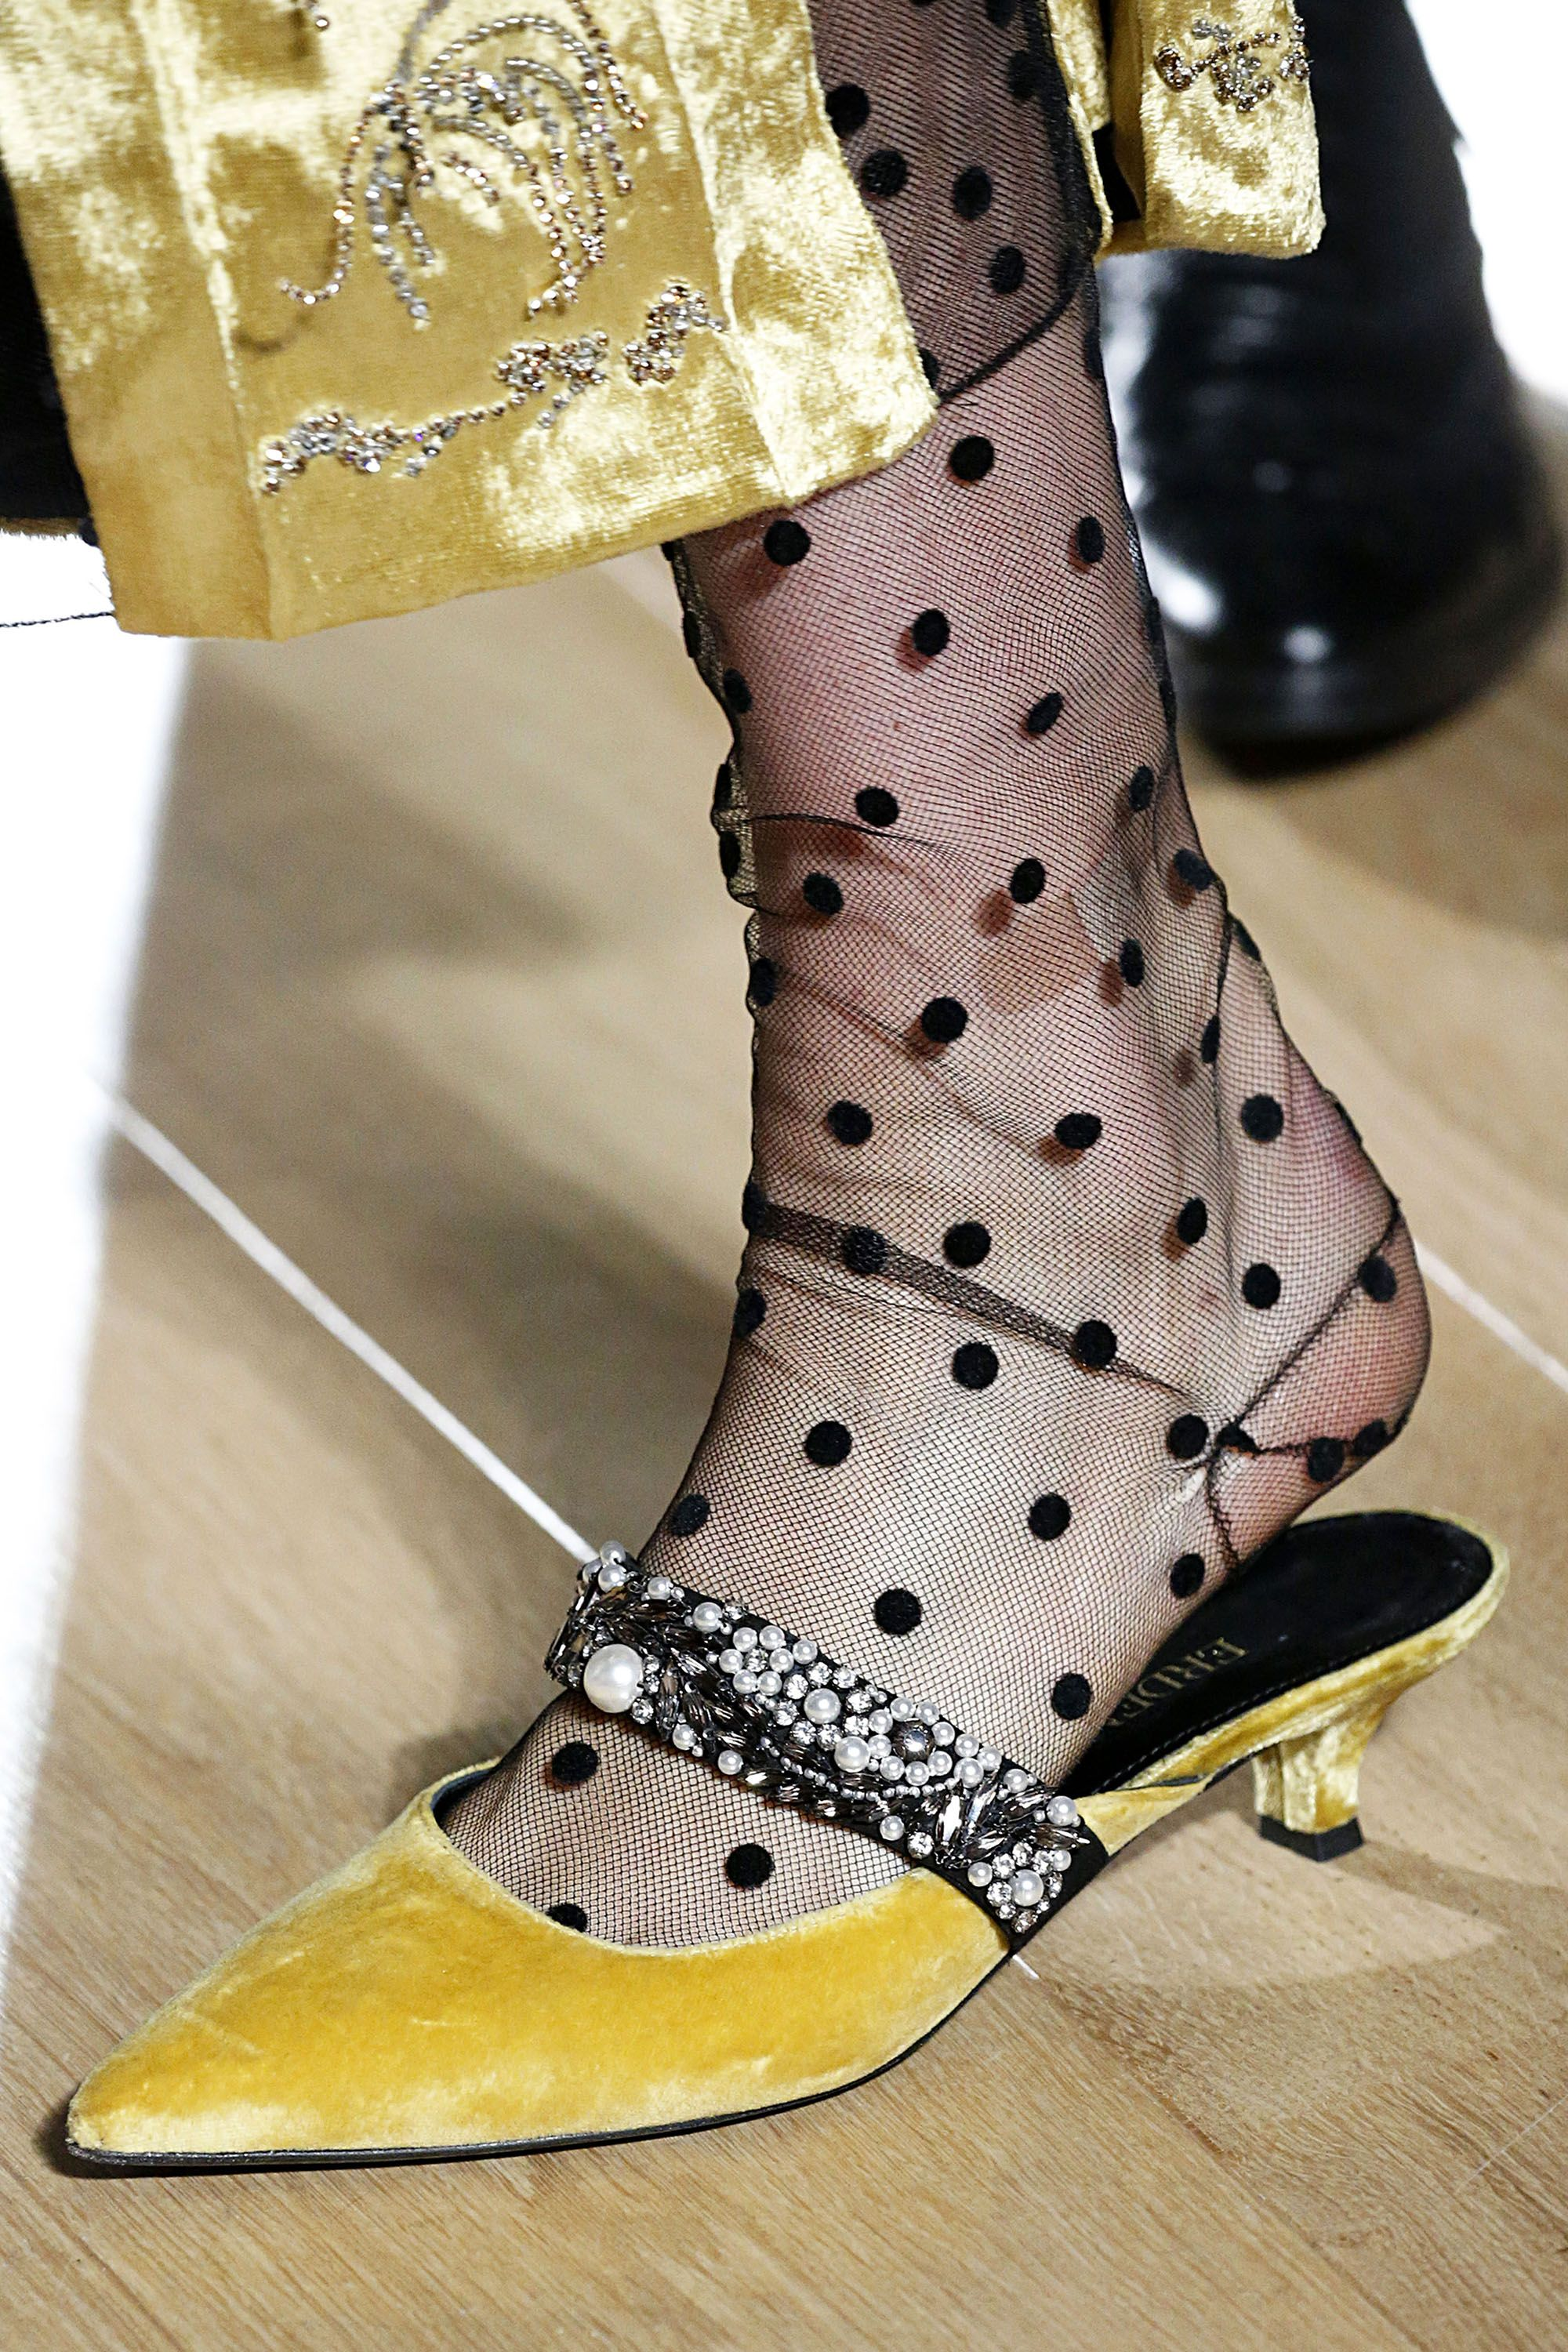 hbz-london-2018-shoe-trends-erdem-gettyimages-922383926-1519162377.jpg (2000×3000)